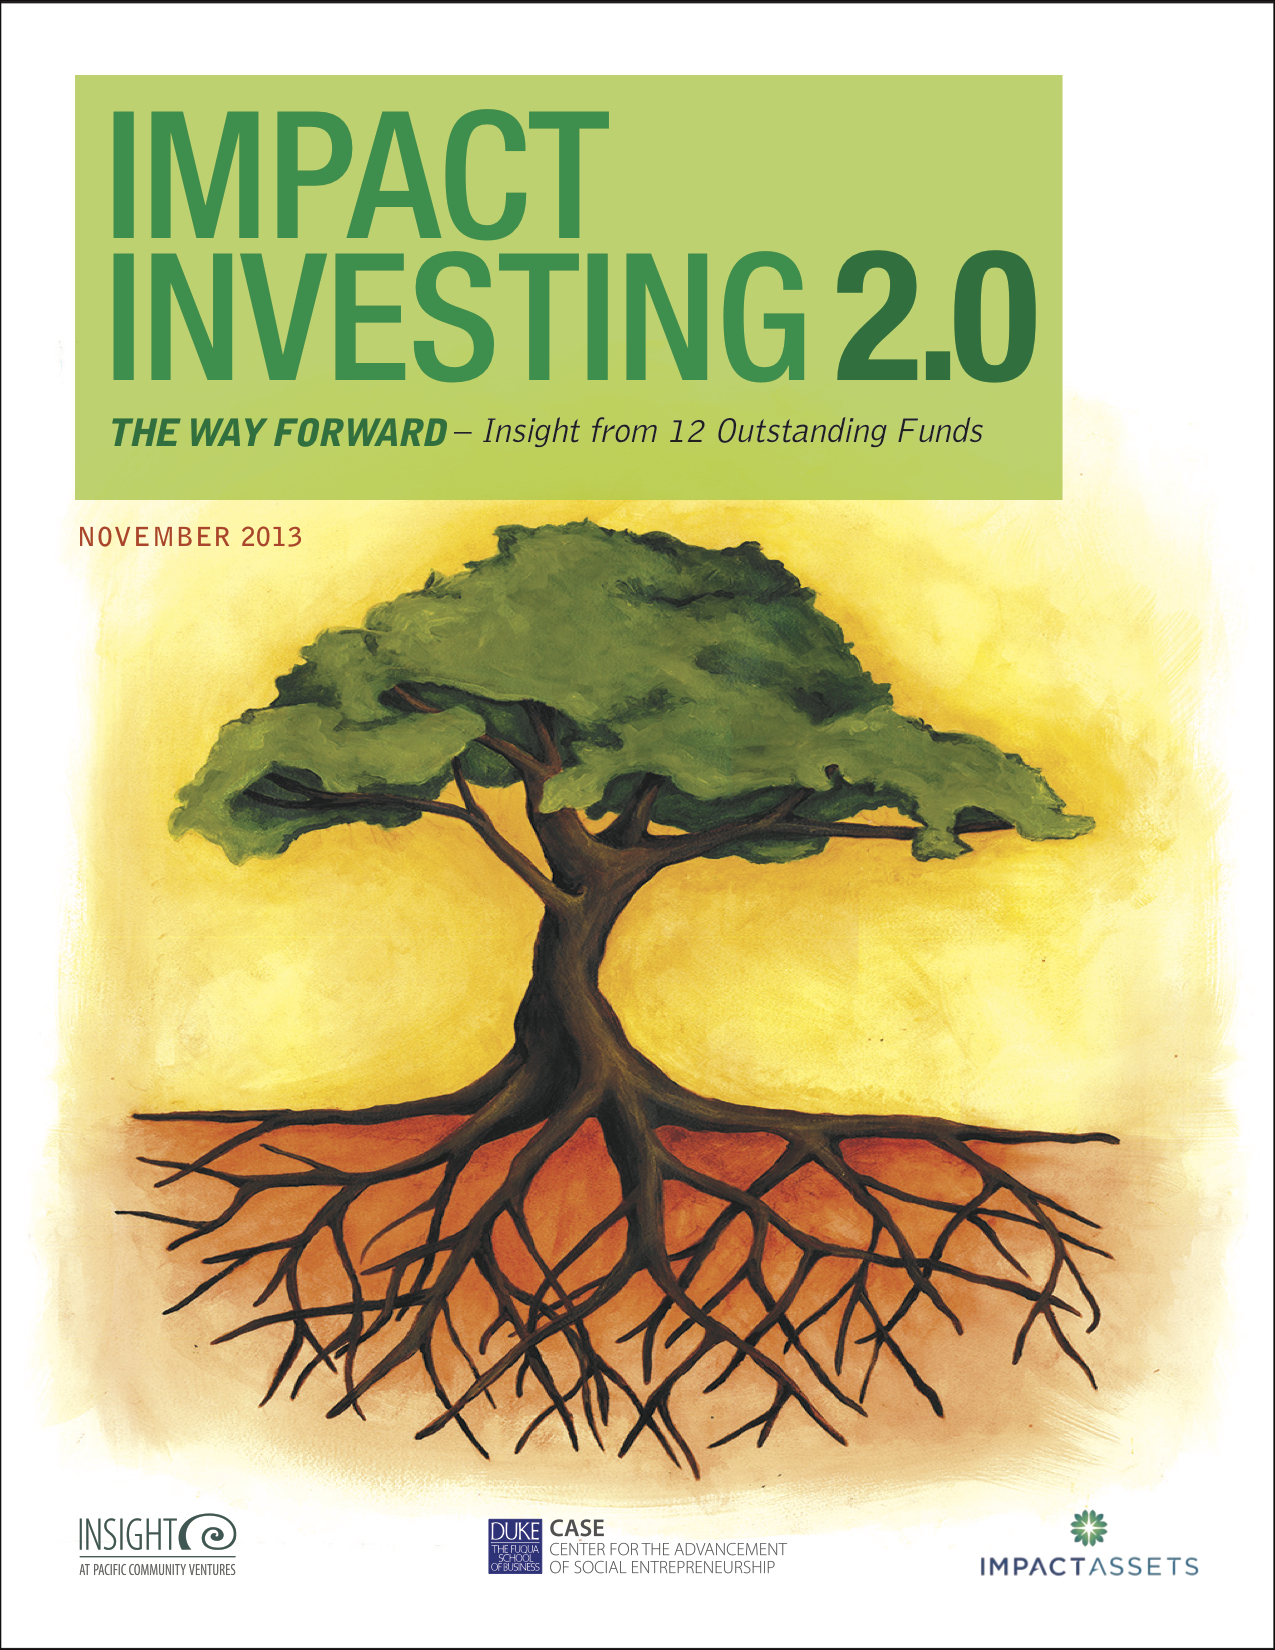 Insight from 12 Outstanding Funds